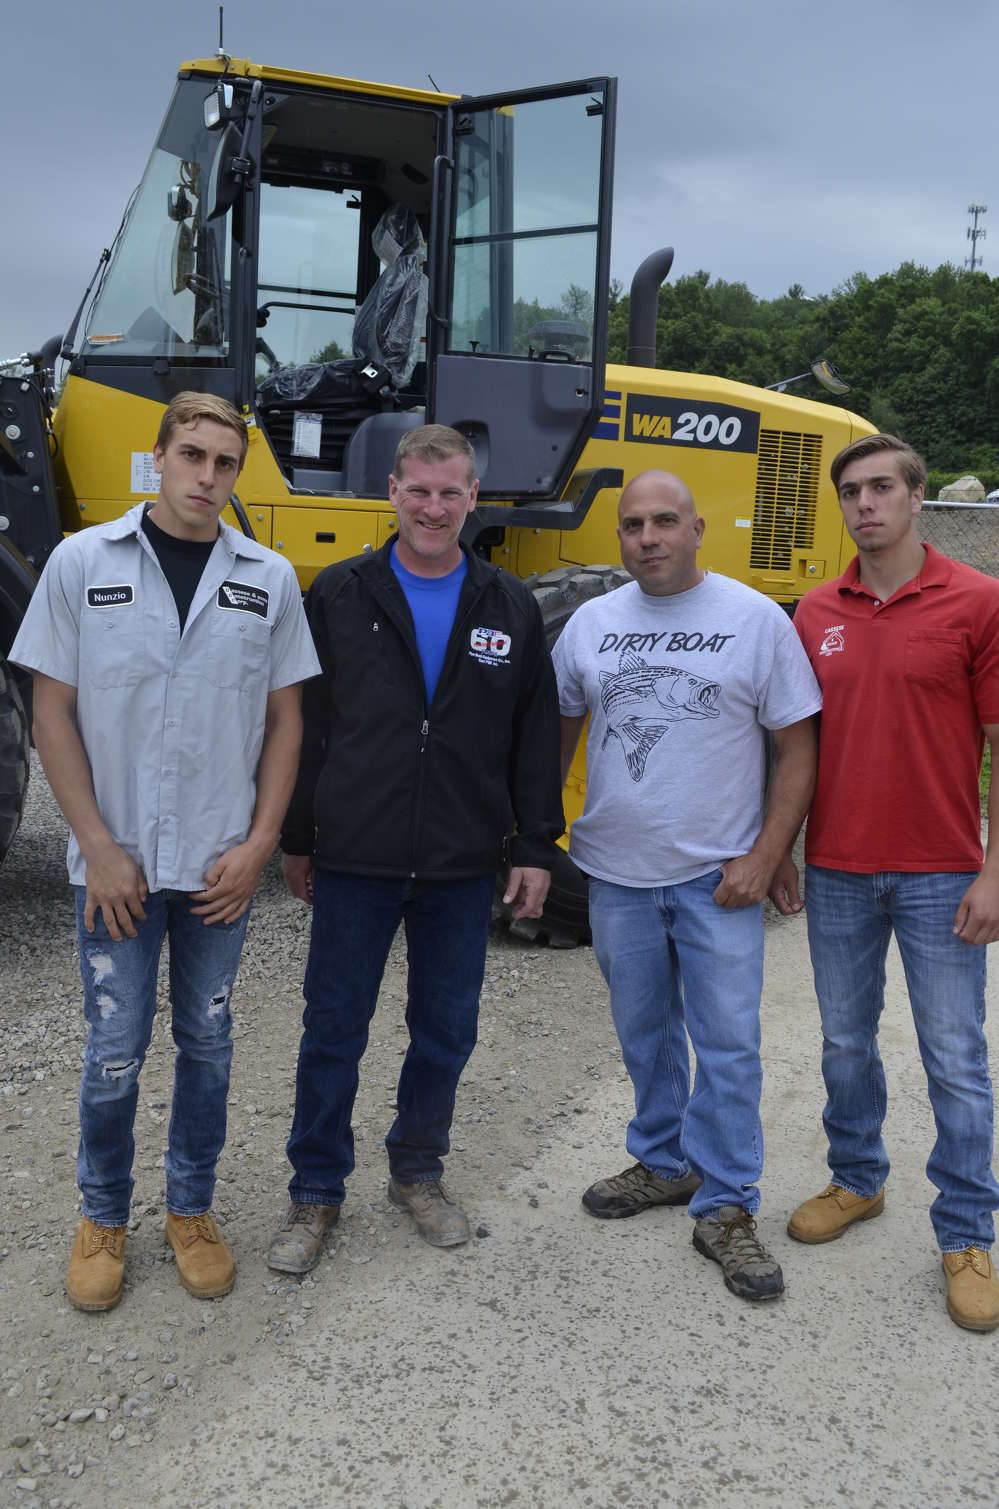 Mark Hufcut (second from L), manager of Pine Bush Equipment's Holmes, N.Y., store, checks out the Komatsu WA200 loader with Nunzio Cassese (third from L) and his sons from Cassese & Sons Construction in Shrub Oak, N.Y.